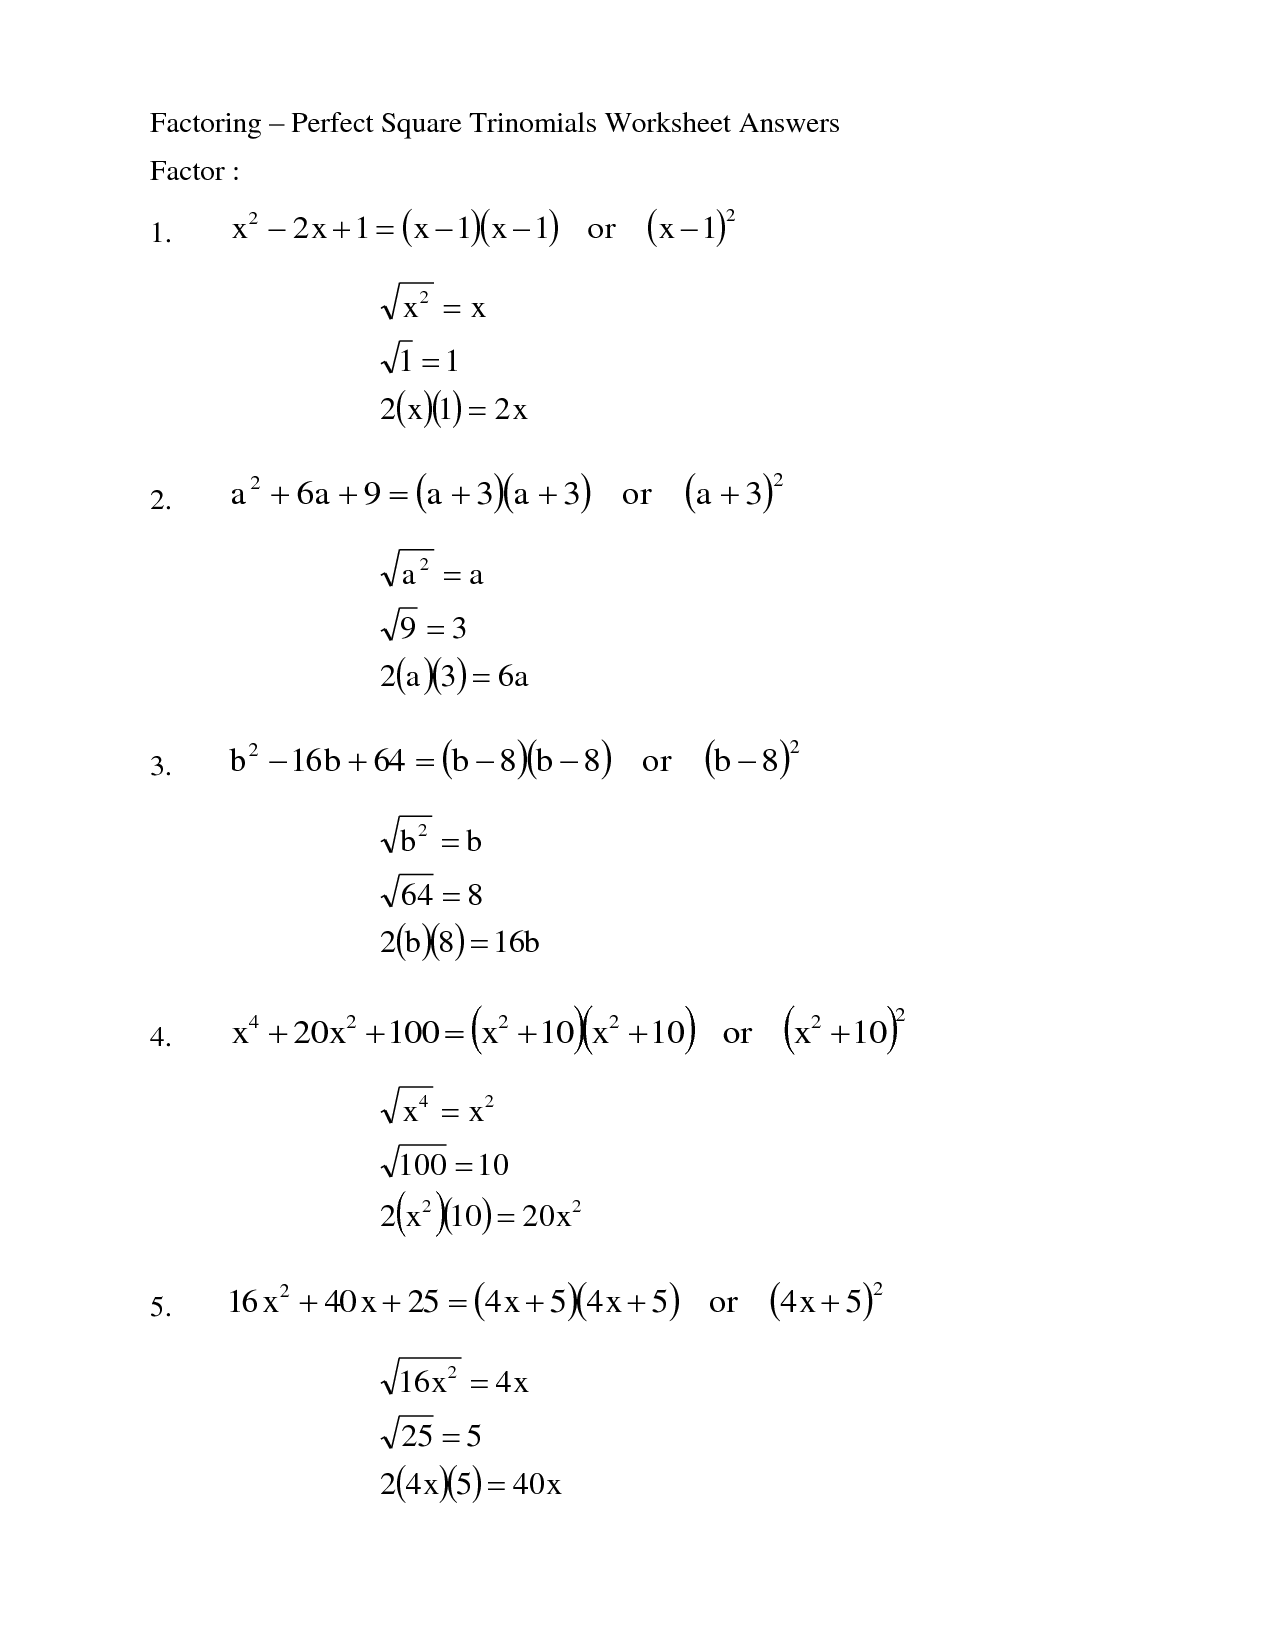 Factoring Trinomials Worksheet Answers Kuta